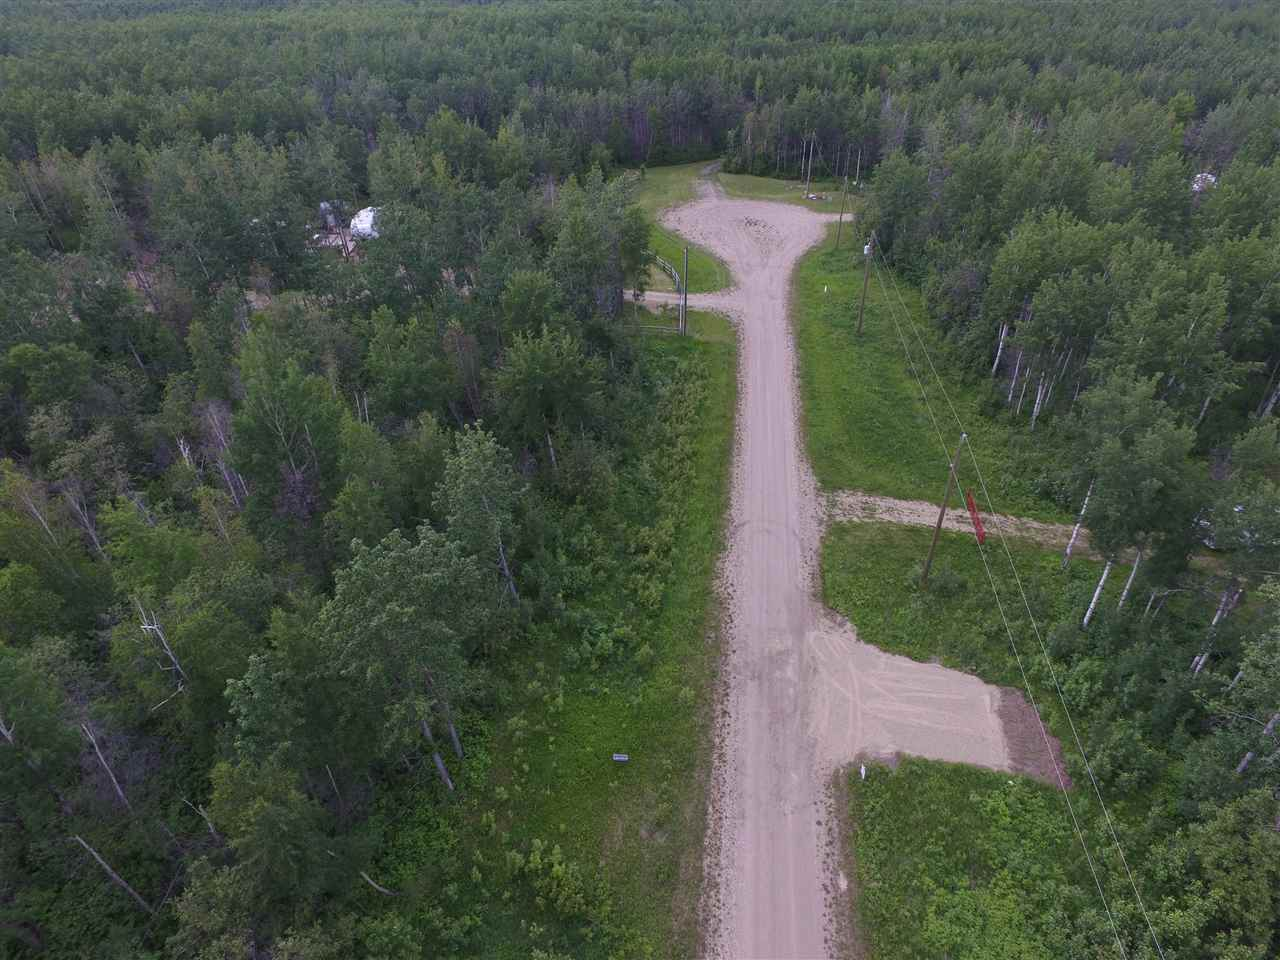 Main Photo: #12 13070 Twp Rd 464: Rural Wetaskiwin County Rural Land/Vacant Lot for sale : MLS® # E4056408